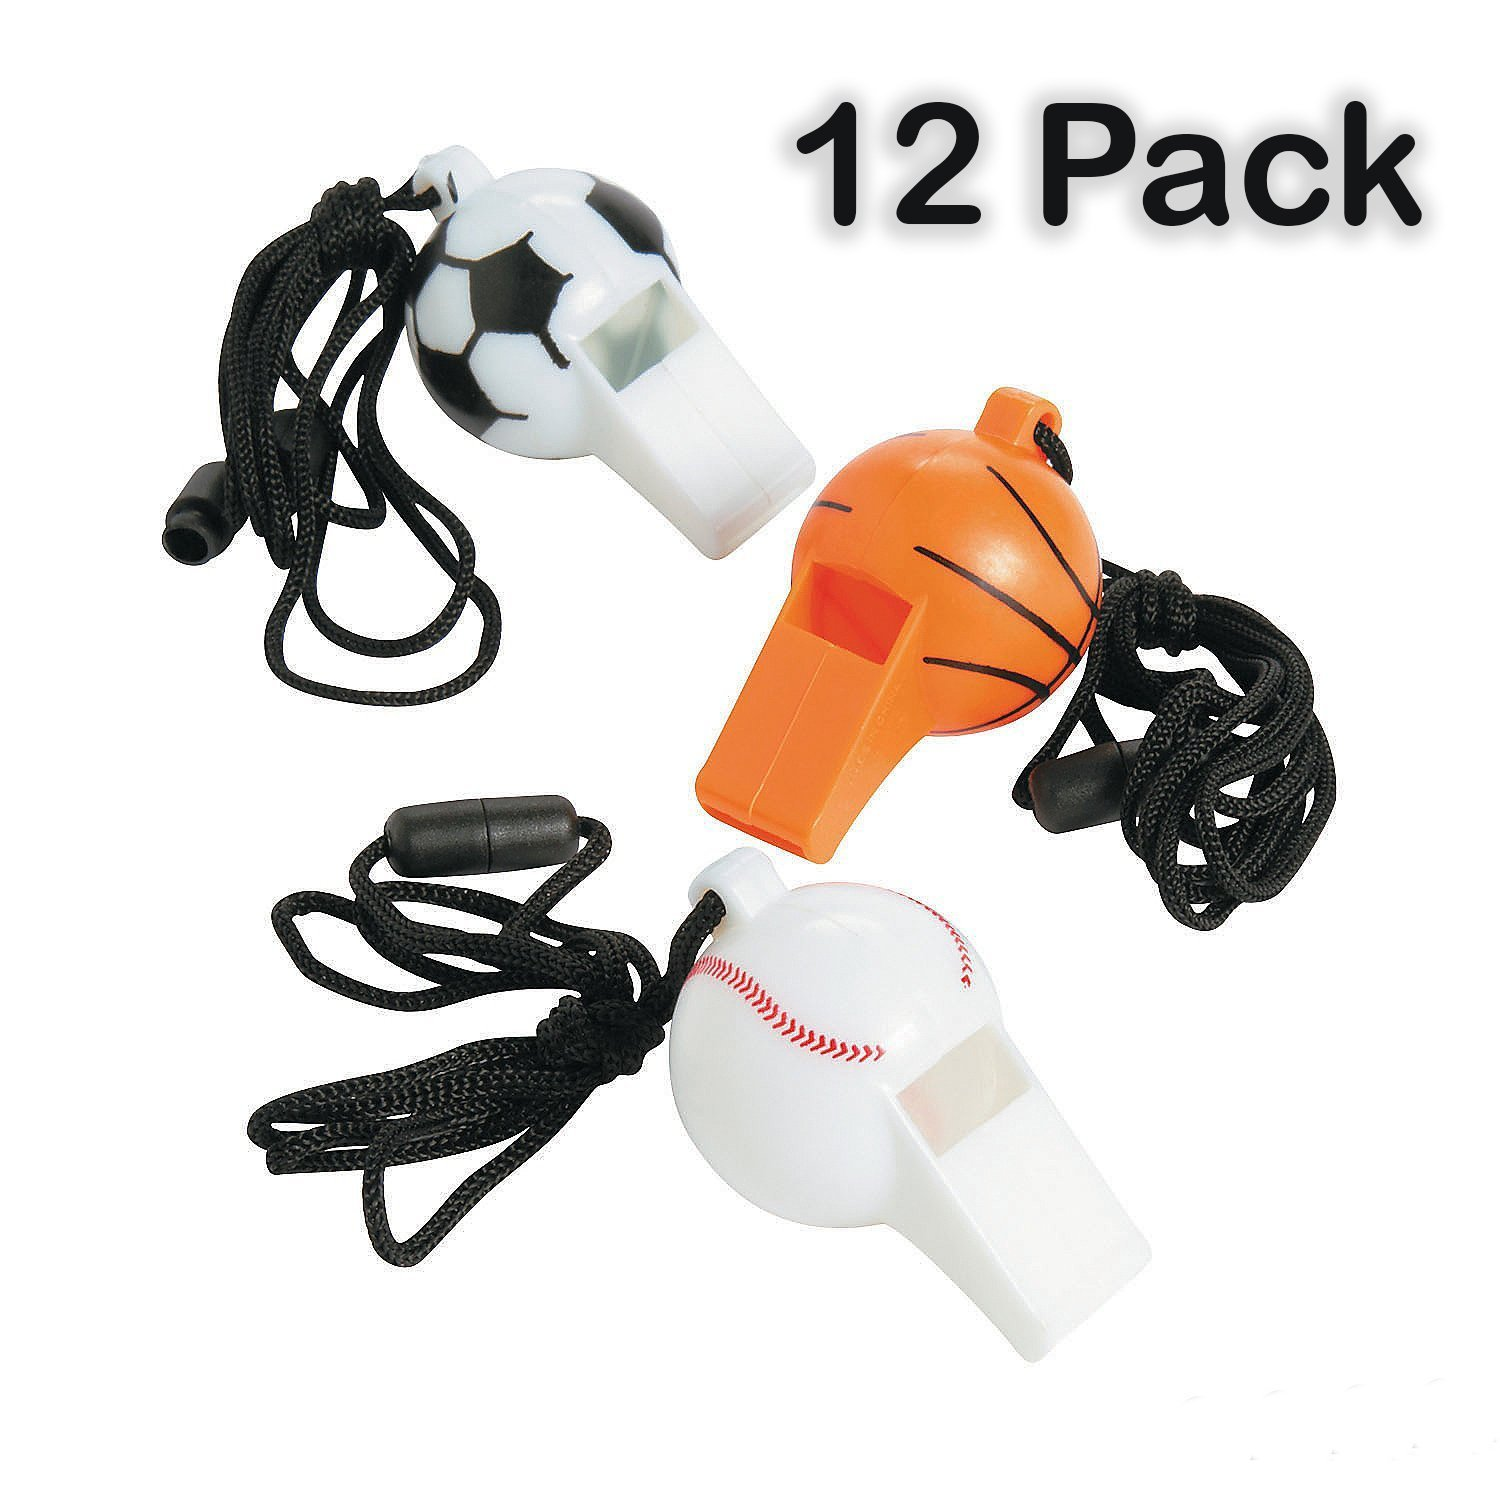 "Plastic Sports Ball Whistles With Lanyard - Pack Of 12 - Whistle Is 2"", Lanyard Is 24"", Assorted Sports Balls - For Kids Great Party Favors, Fun, Toy, Gift, Prize For Sports Festivals - By Kidsco"